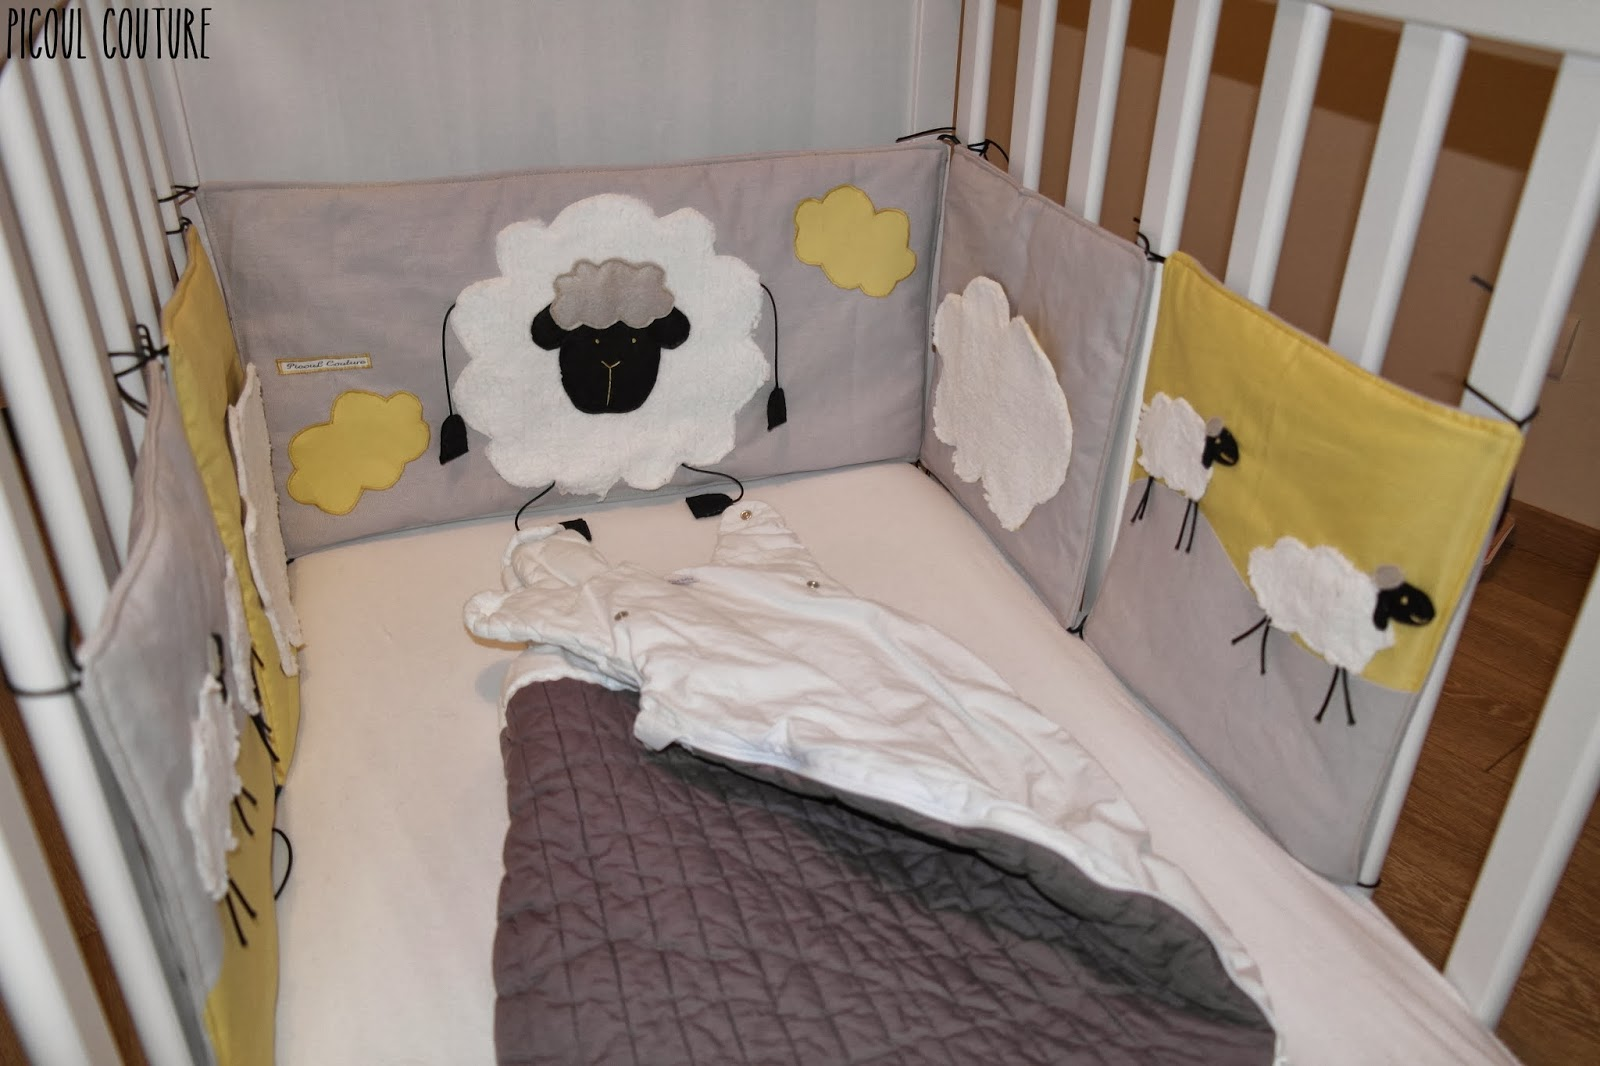 picoul couture le tour de lit sur le th me moutons et. Black Bedroom Furniture Sets. Home Design Ideas